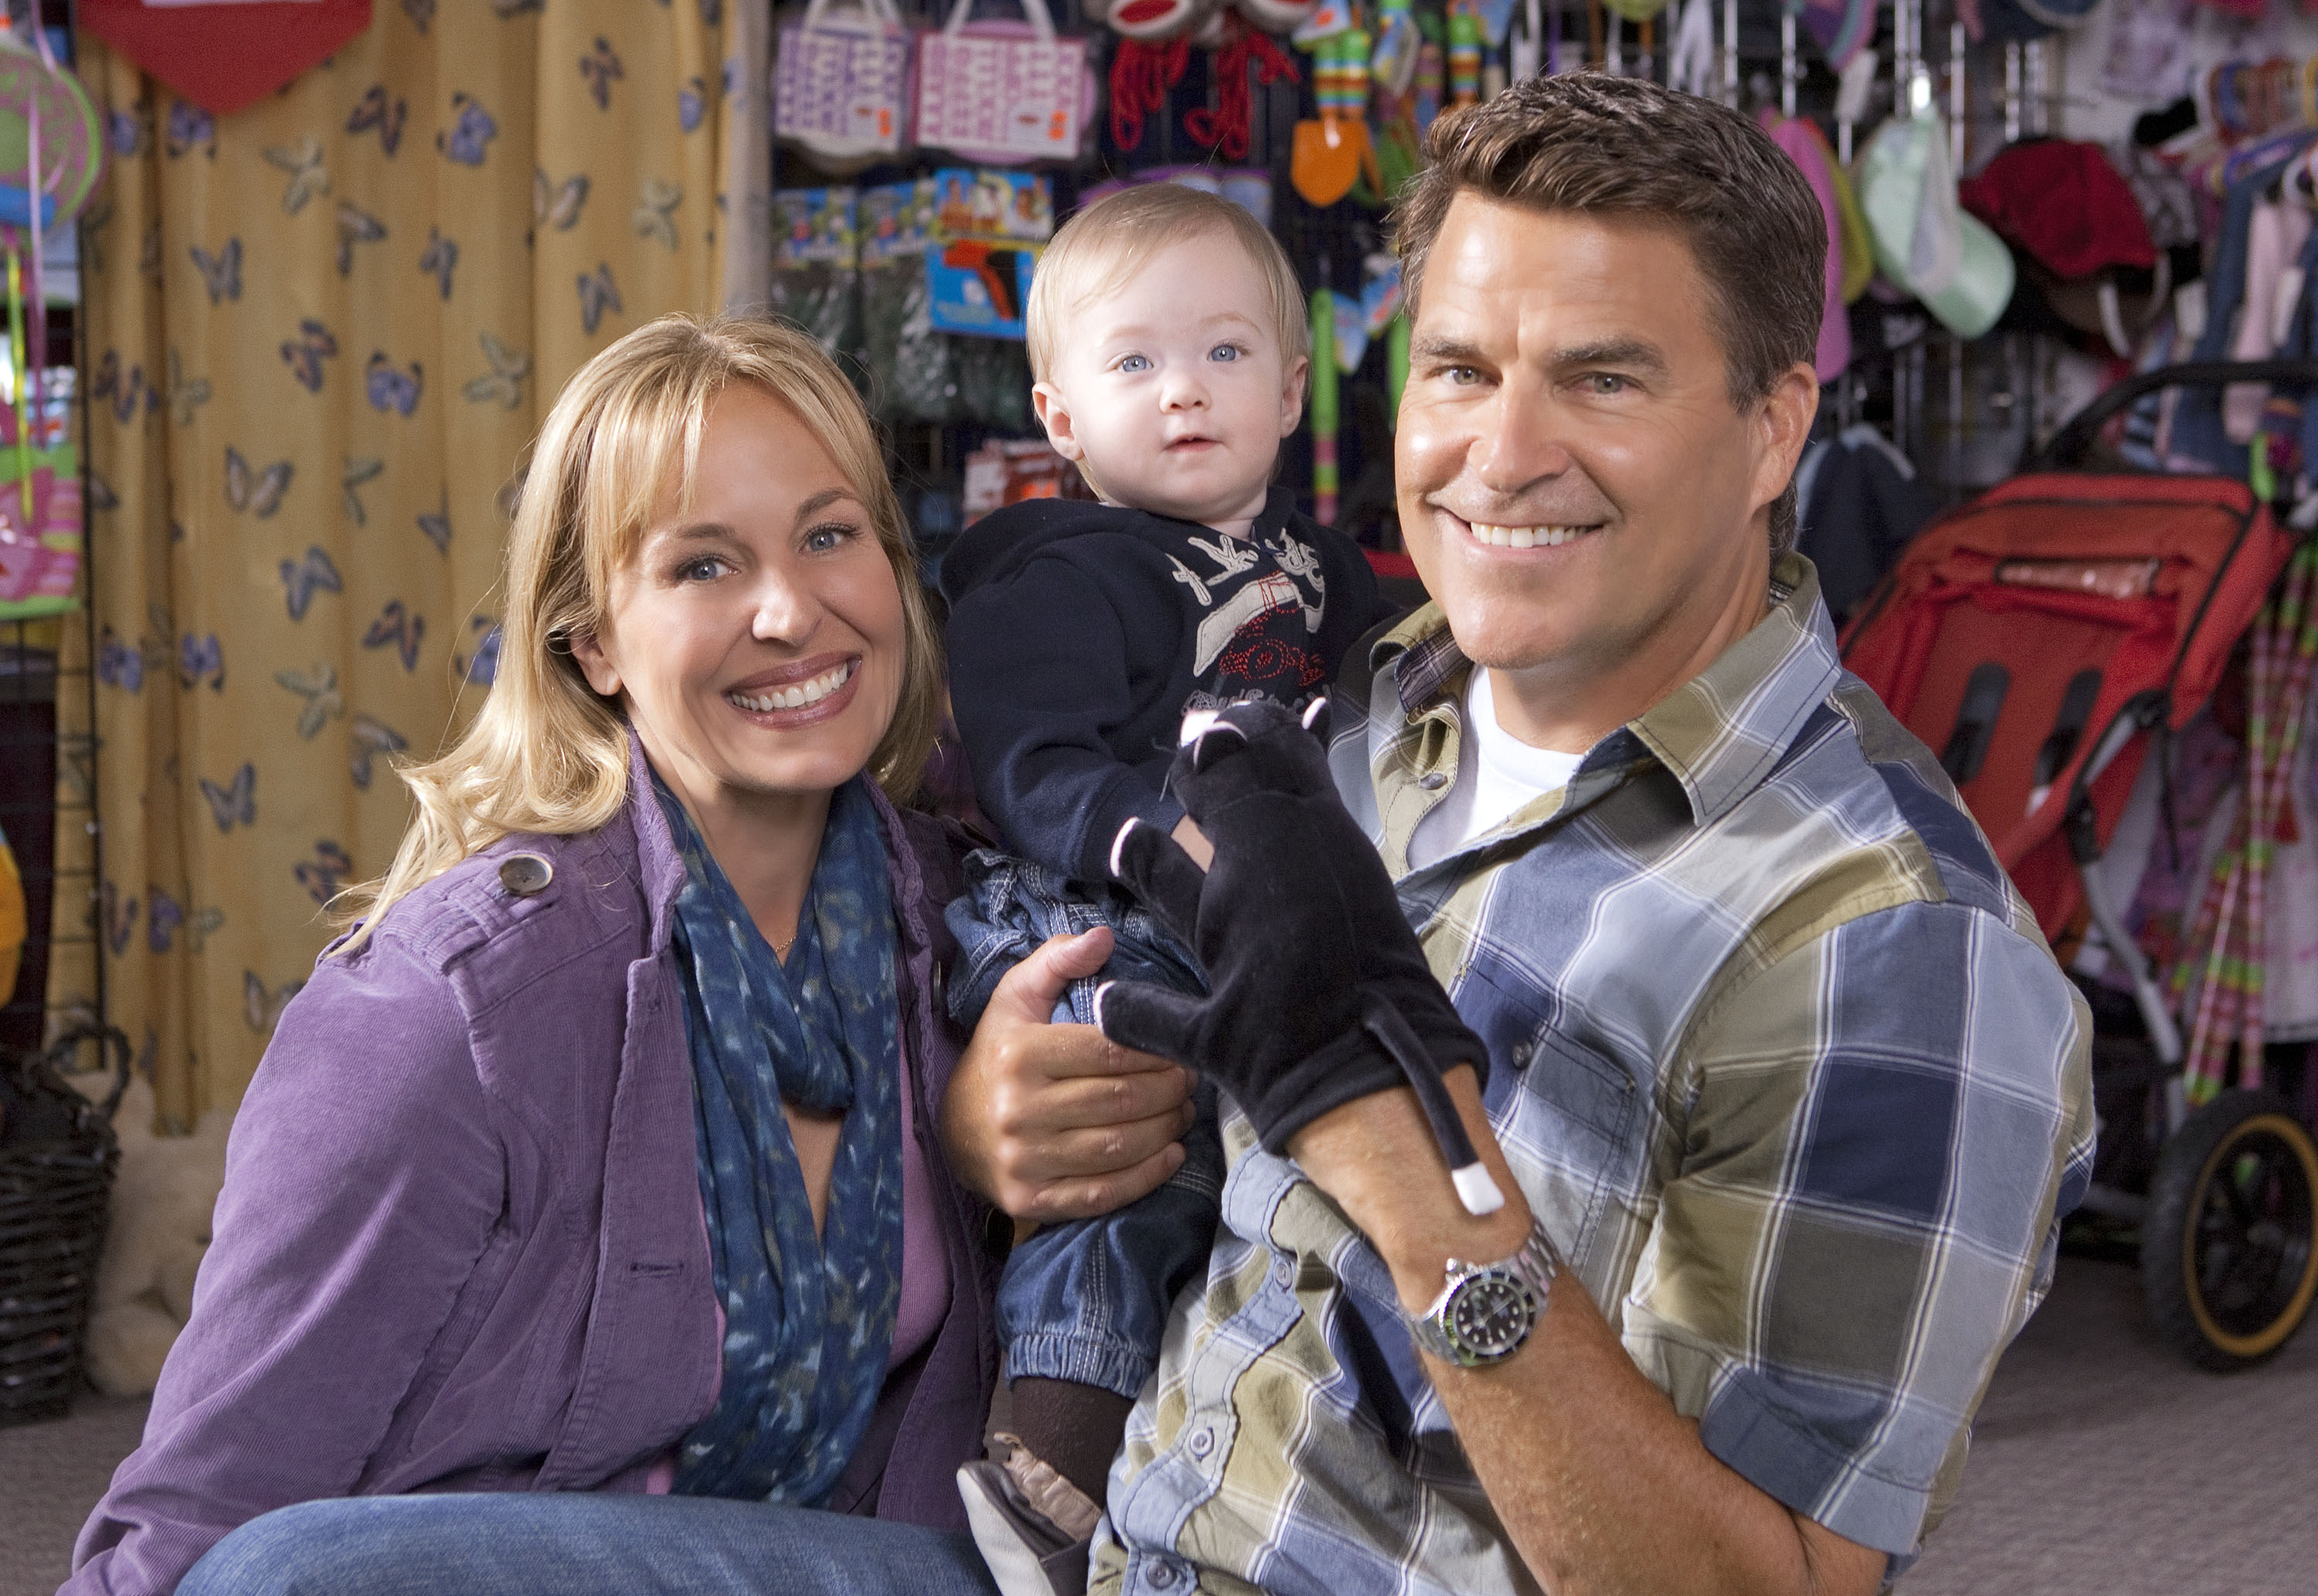 Notes From The Heart Healer with Genie Francis and Ted McGinley premieres May 13 on Hallmark Channel